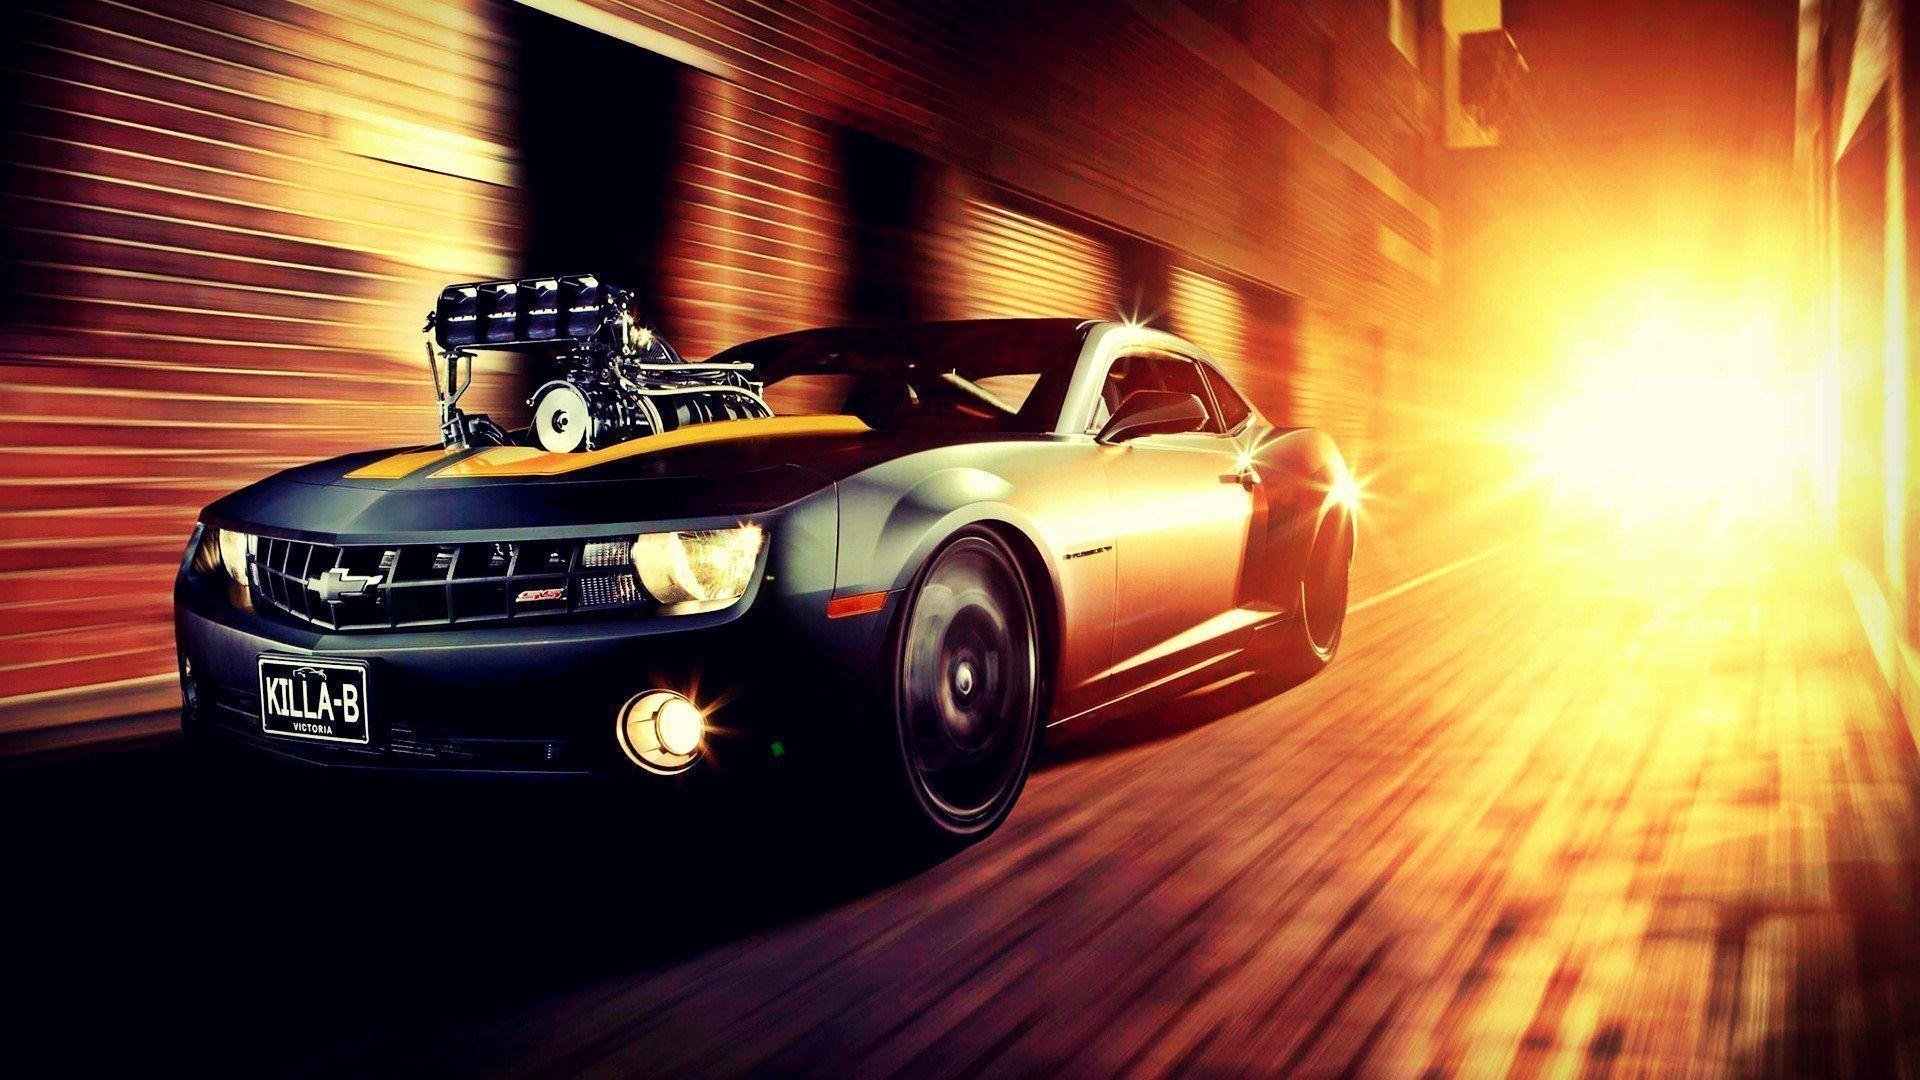 Latest Cool Car Backgrounds Wallpapers Wallpaper Cave Free Download